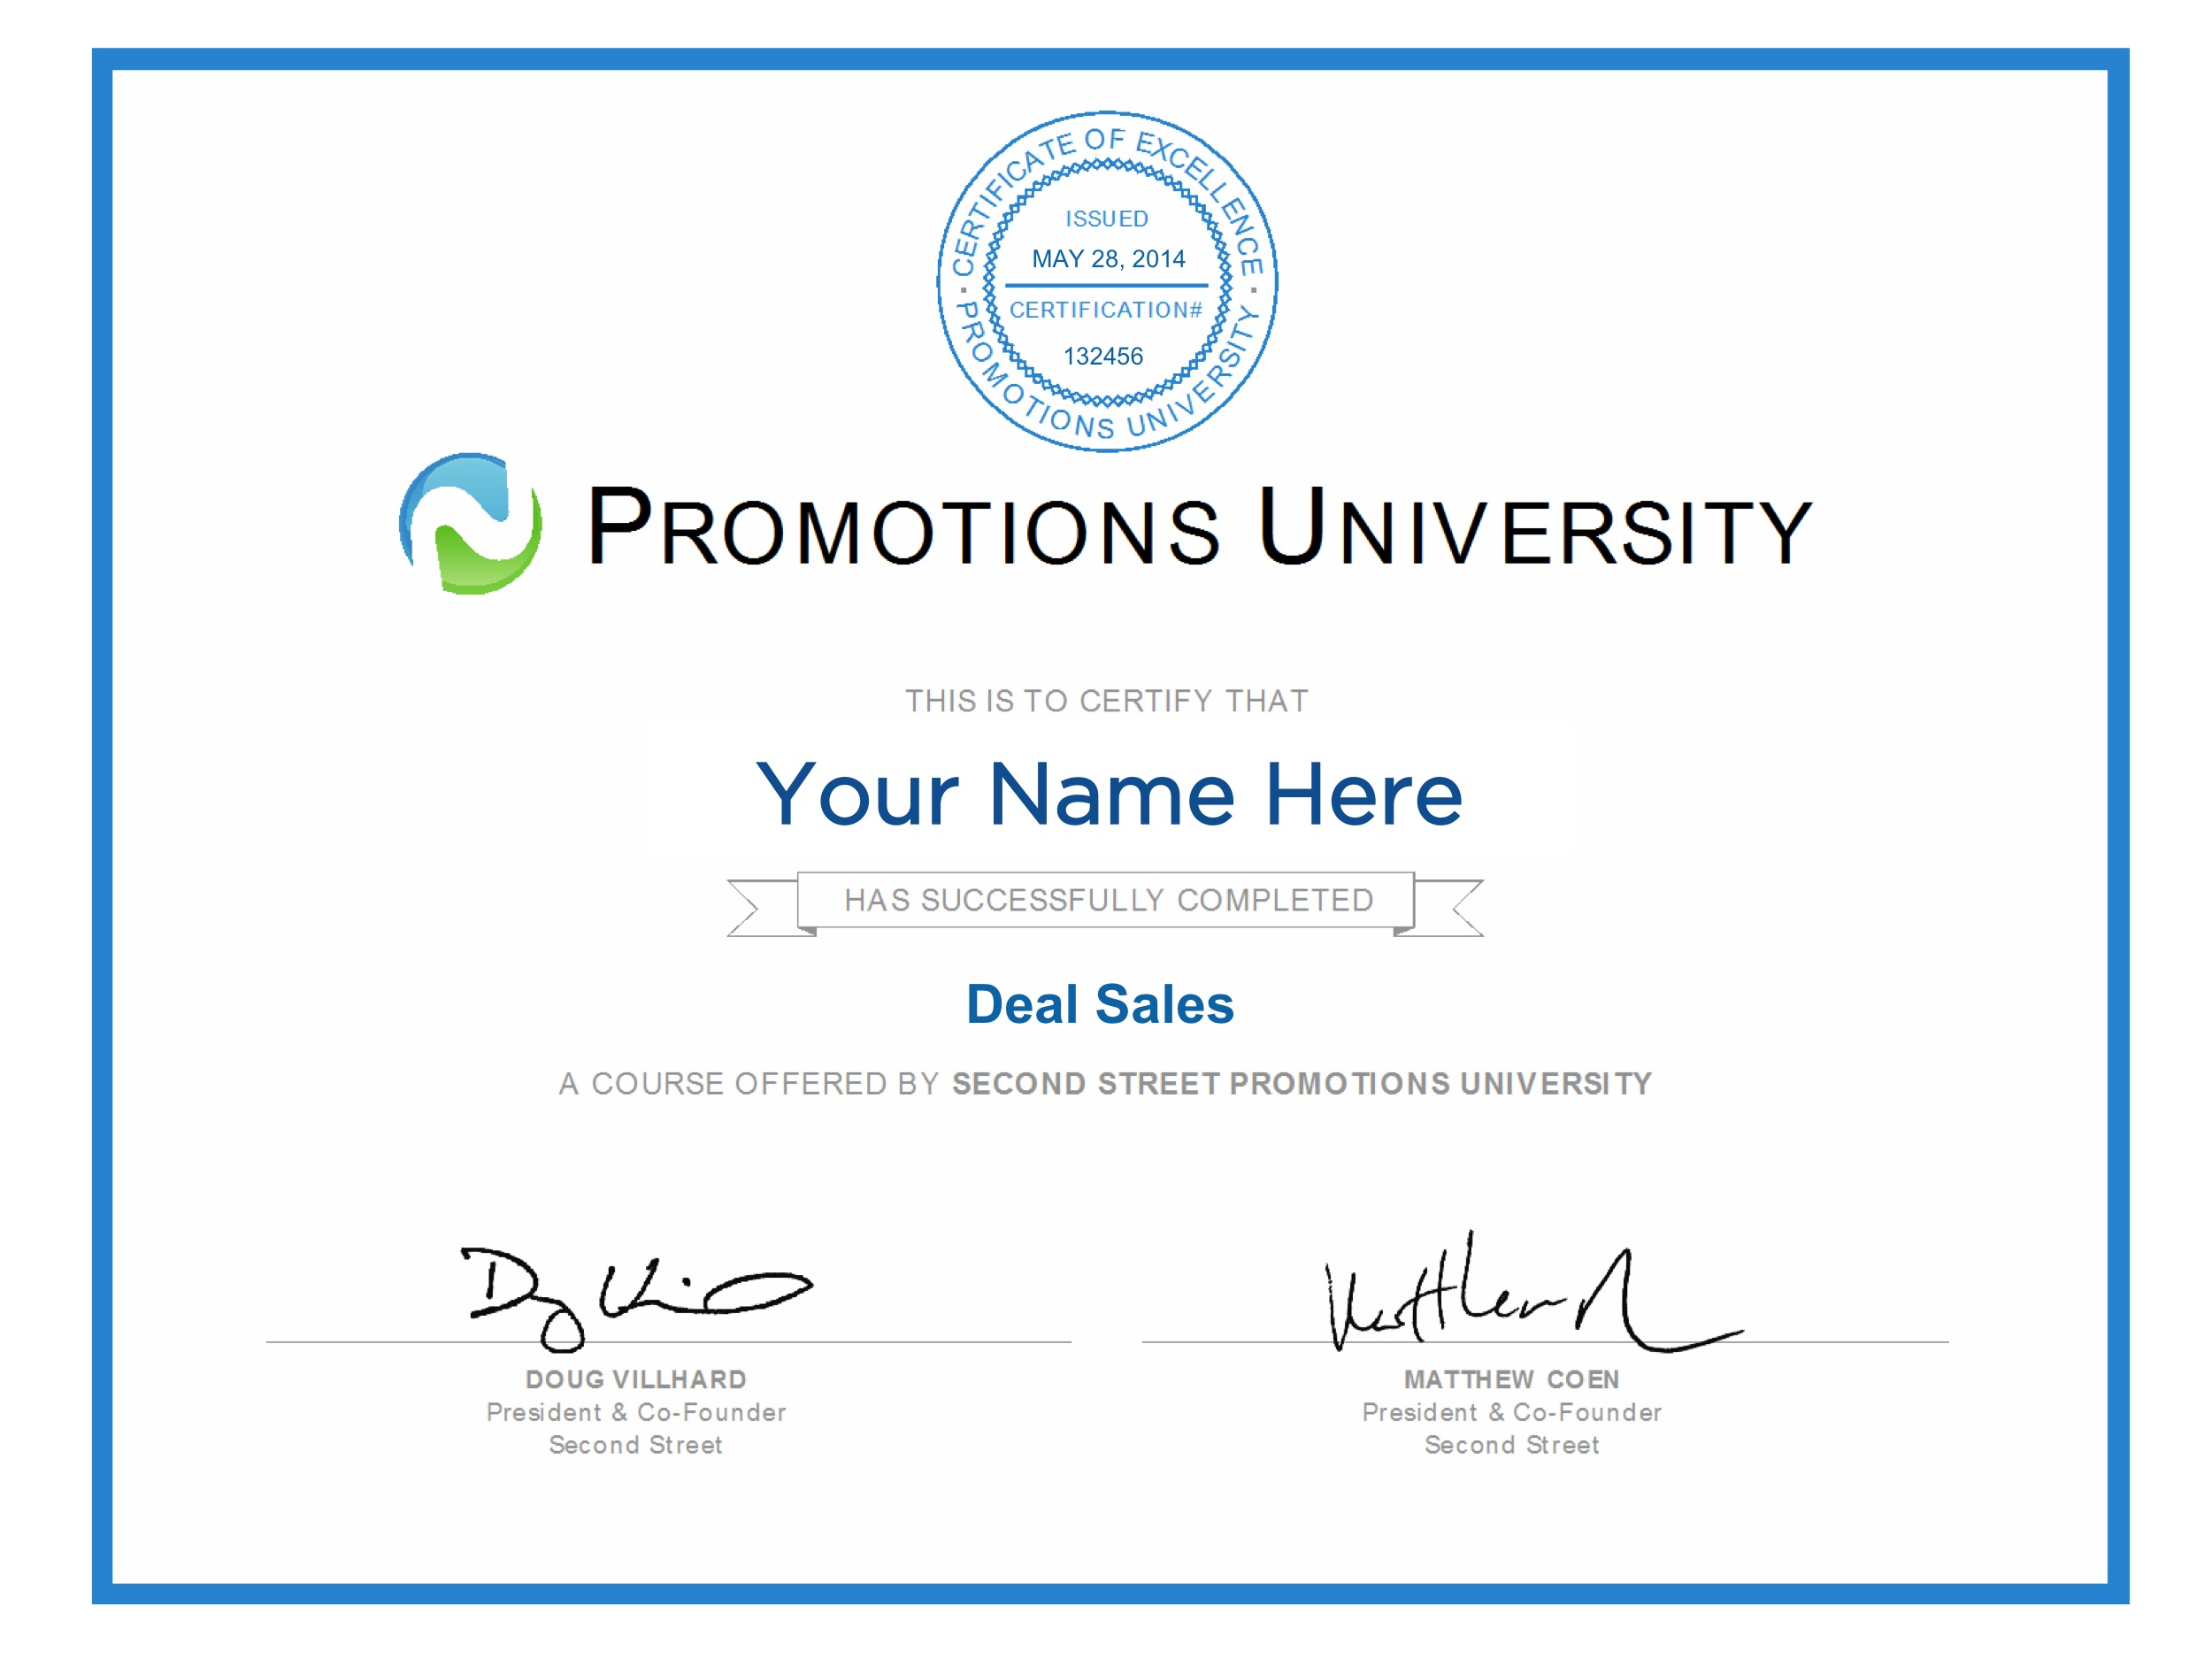 Promotions university second street become a certified promotions expert xflitez Gallery